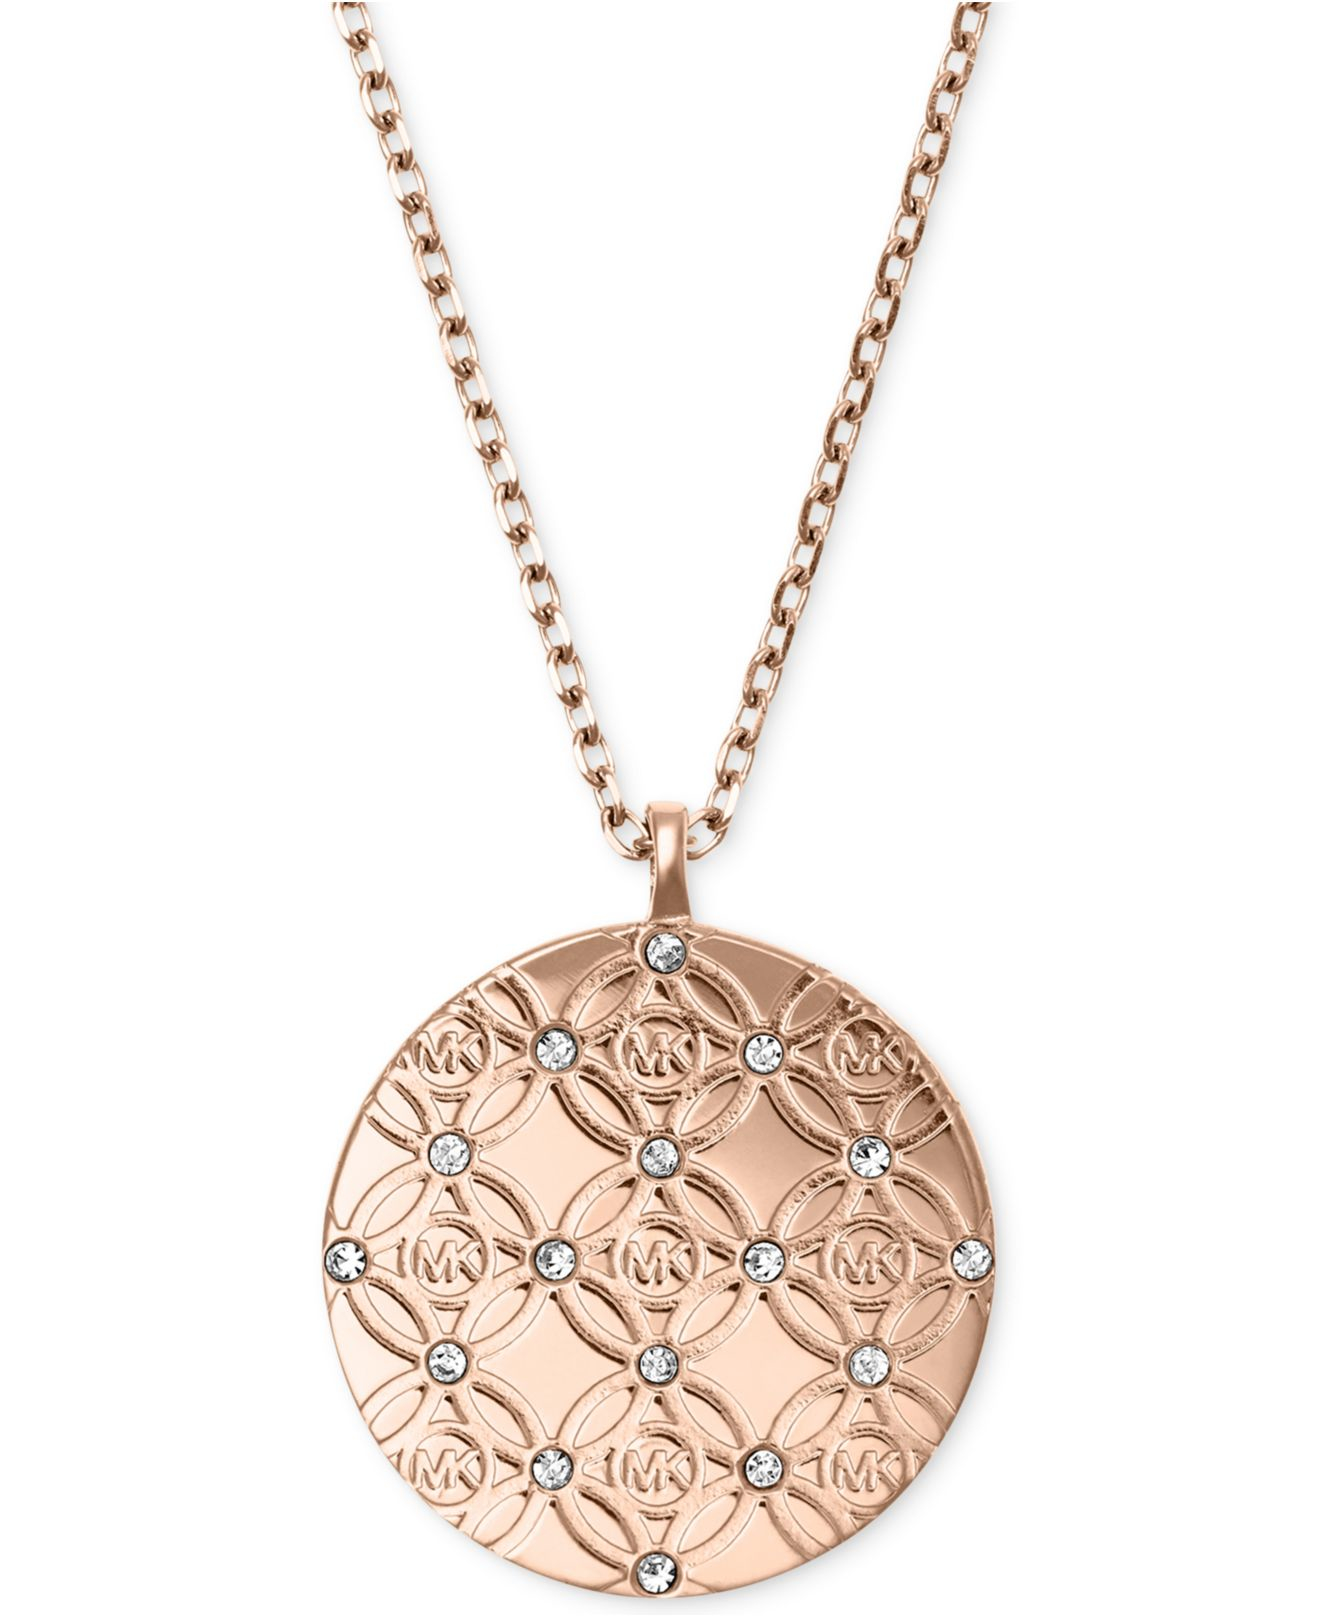 Lyst michael kors monogram disk pendant necklace in pink gallery mozeypictures Choice Image